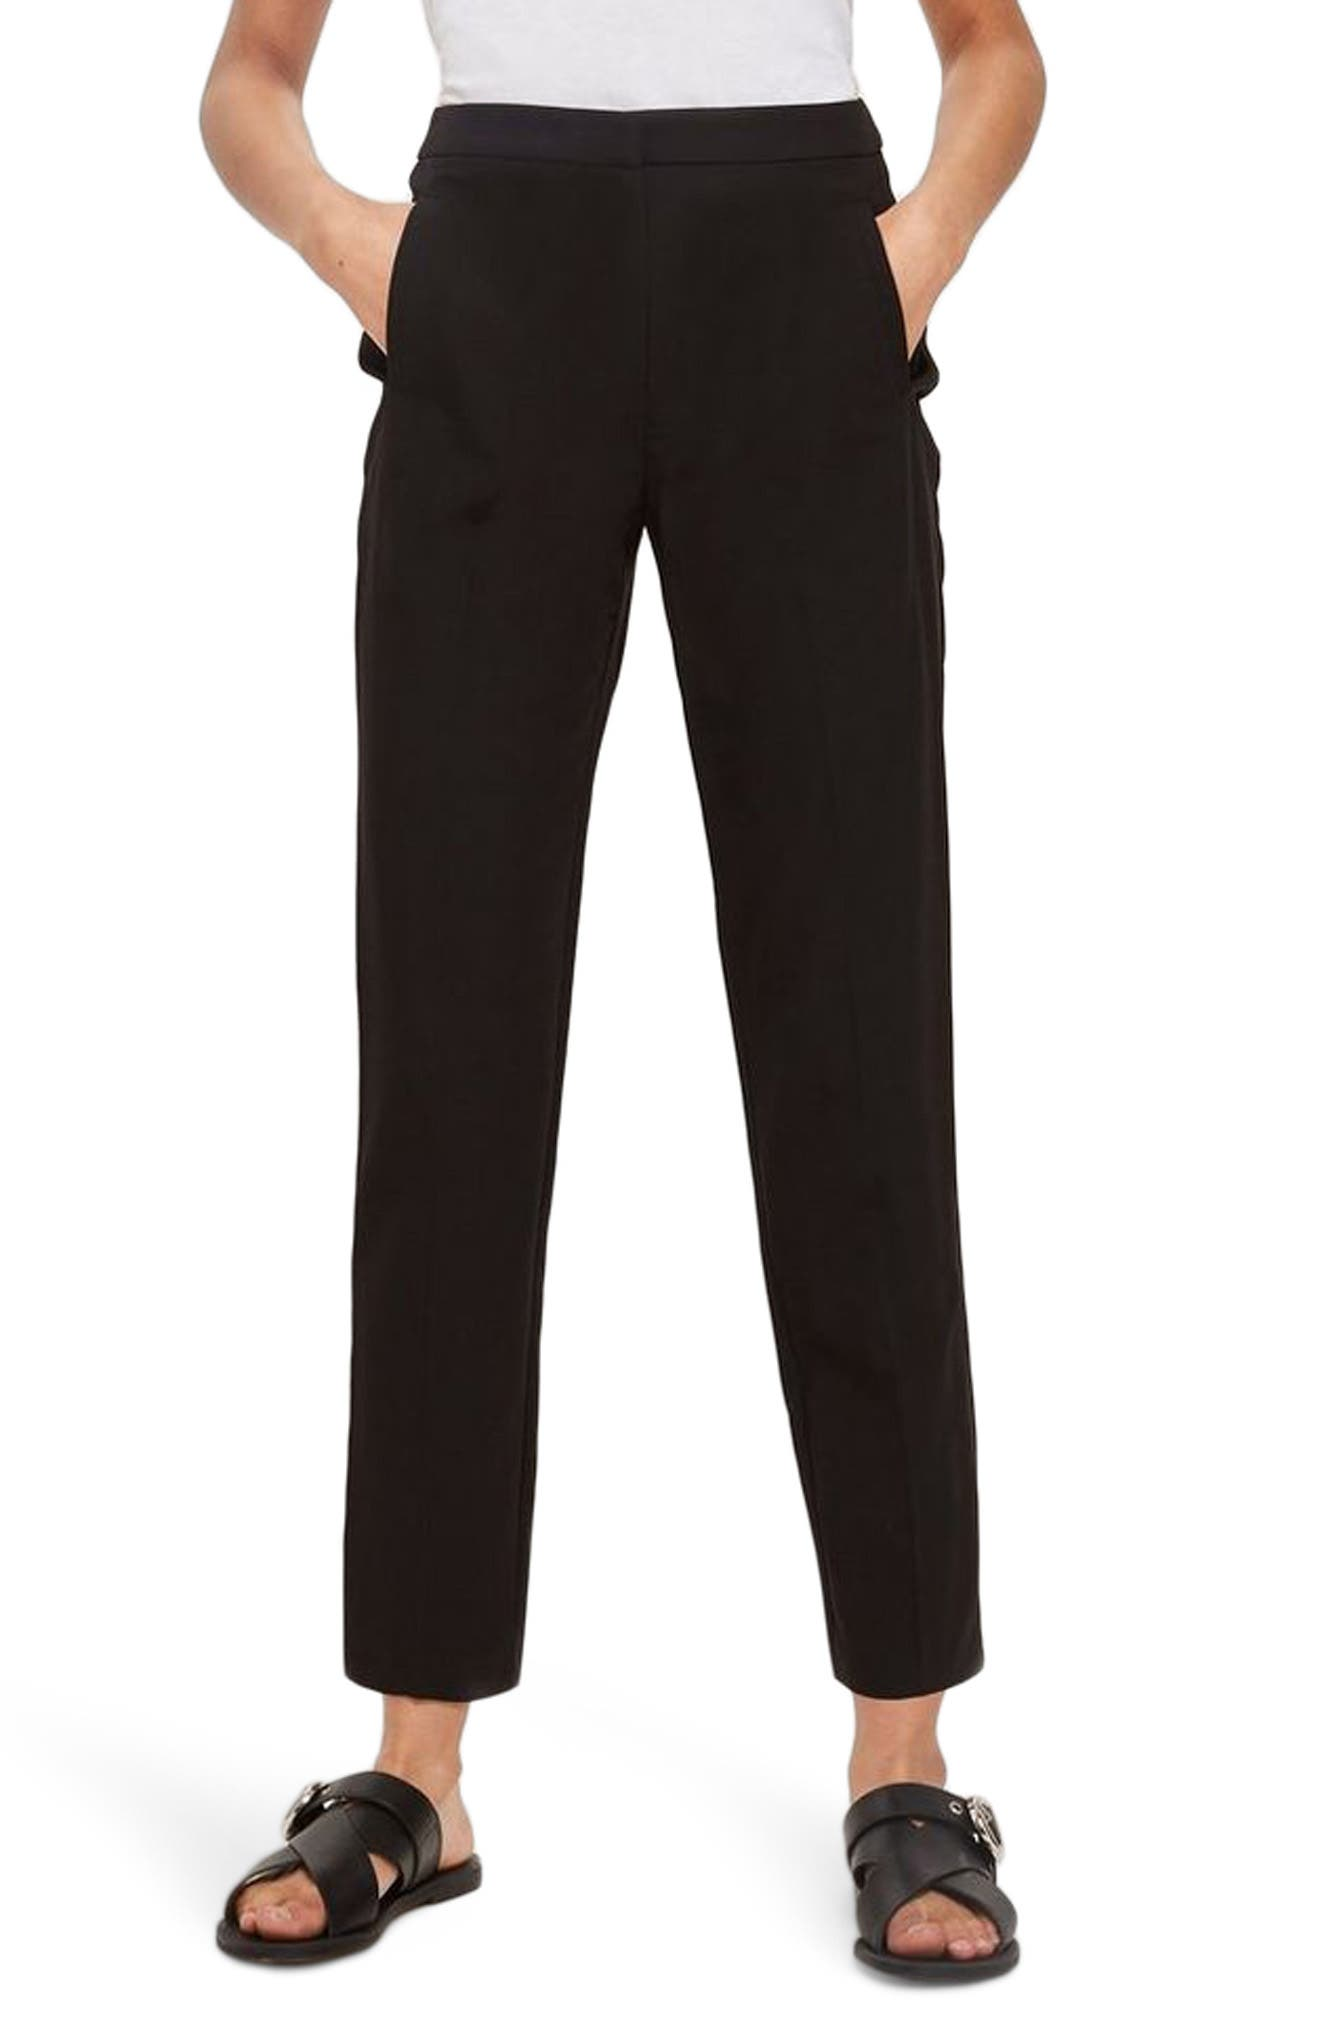 High Waist Cigarette Trousers,                         Main,                         color, Black